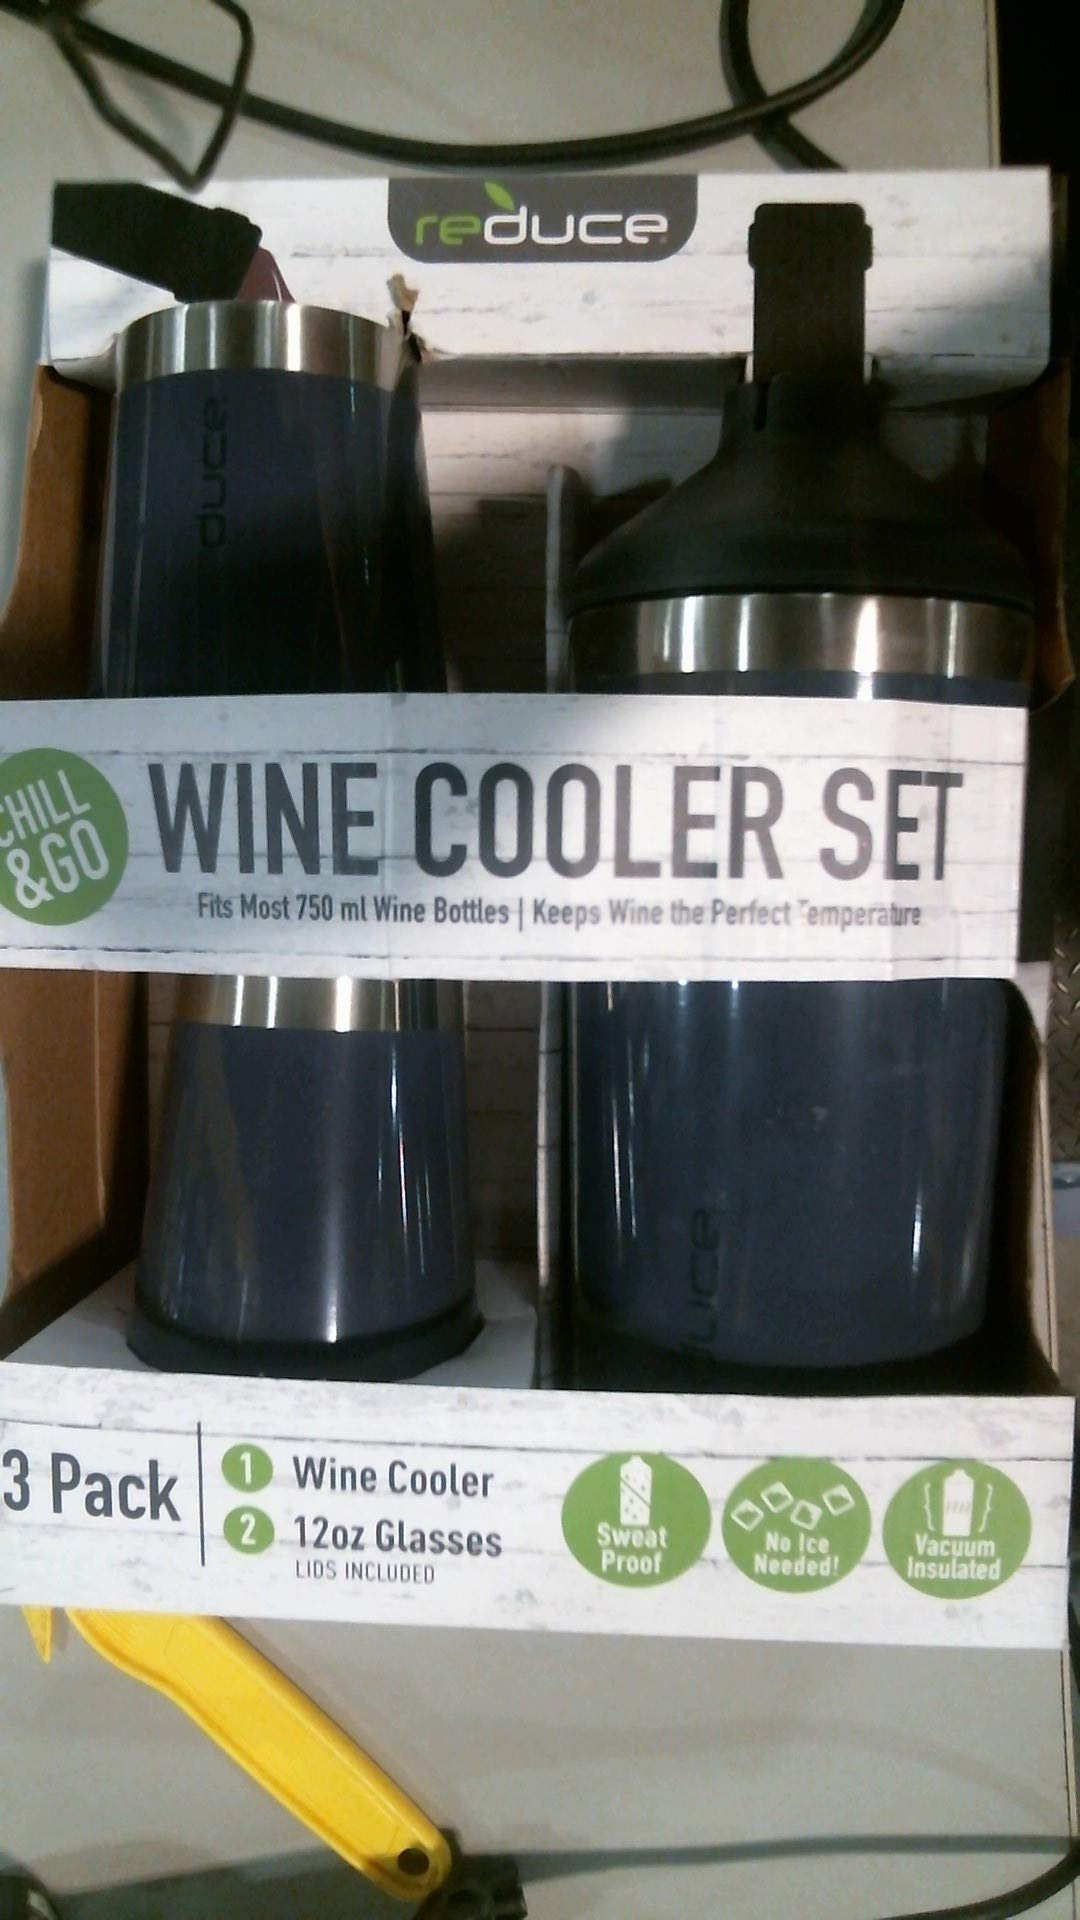 reduce Stainless Steel Wine Cooler Set, Mint - Includes (1) 750mL Wine Cooler with (2) Vacuum Insulated 12oz Wine Tumblers – Tasteless & Odorless, BPA Free